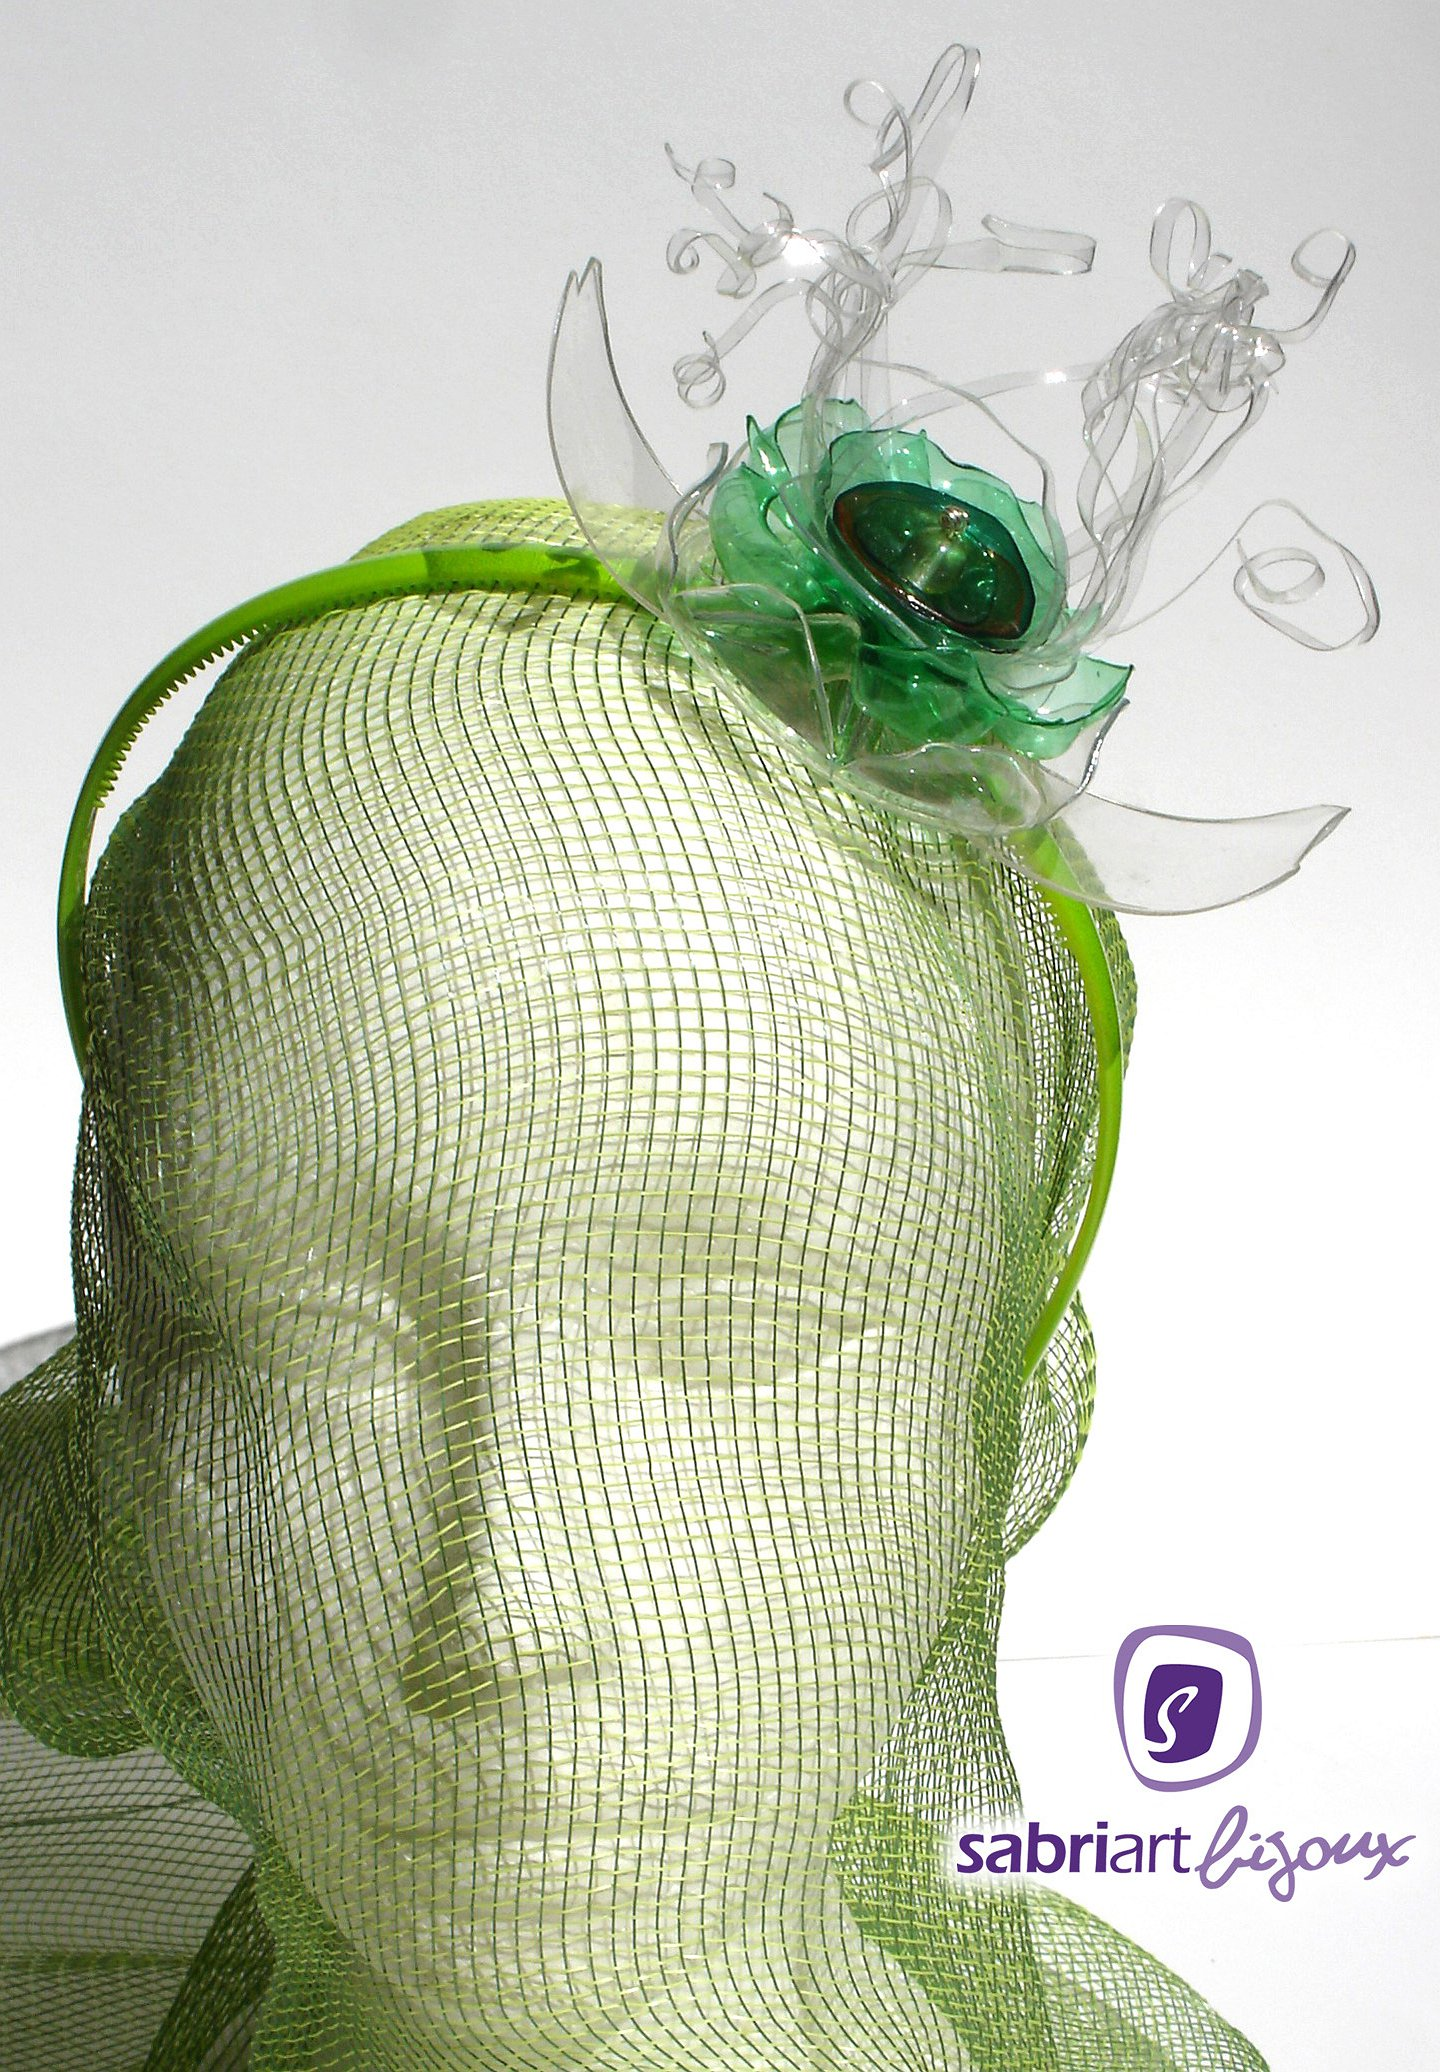 <h2>Daniela</h2><br><h3>Fascinator e Cerchietti</h3>